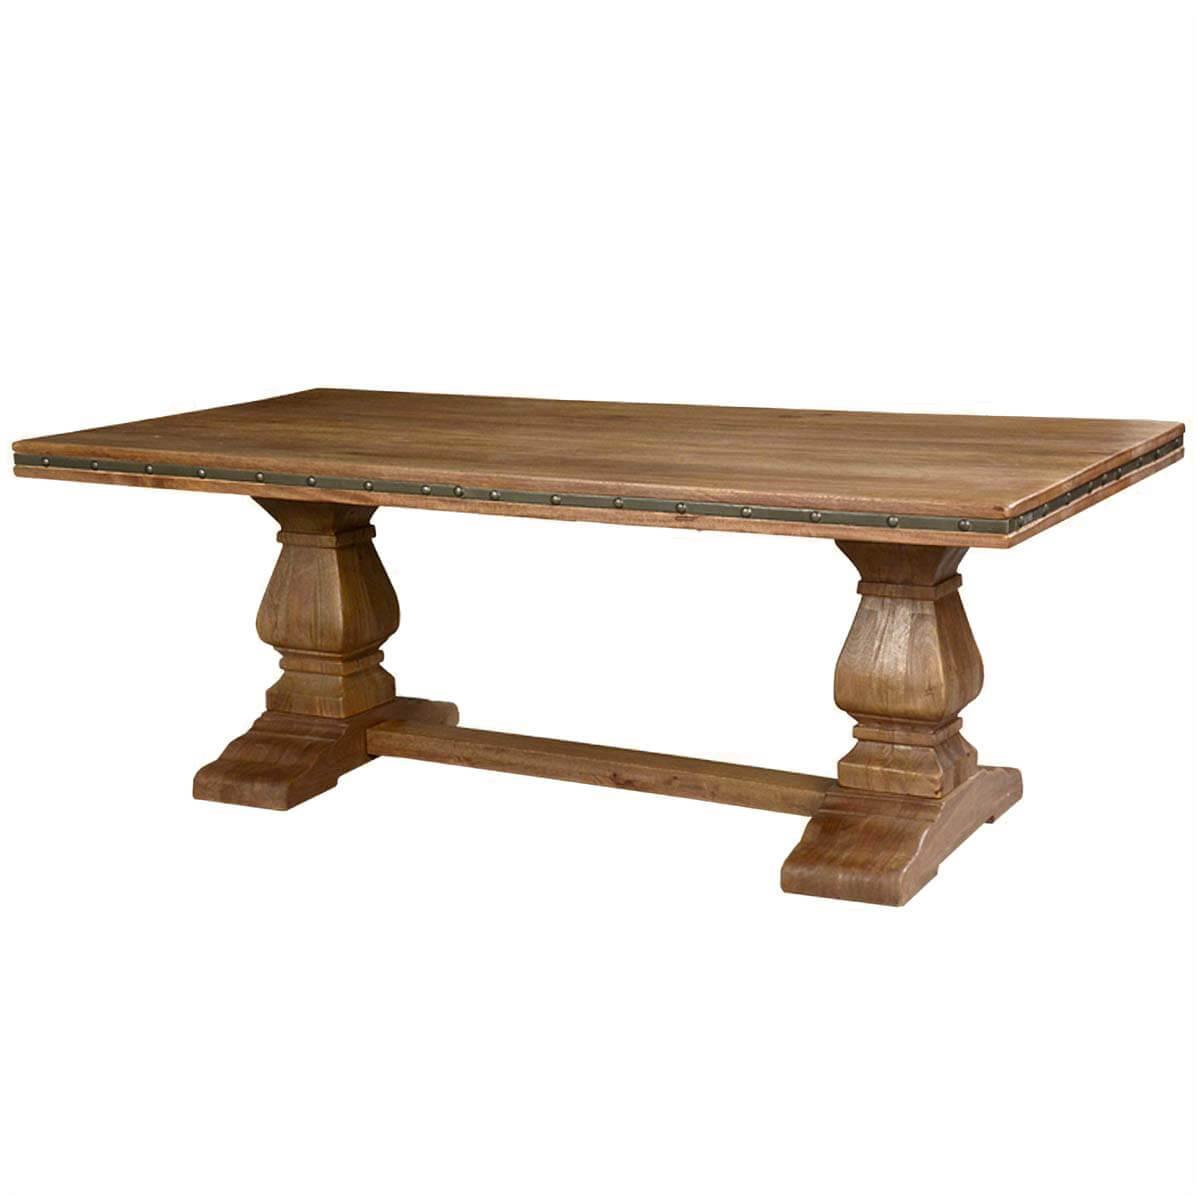 Rustic solid wood trestle pedestal base harvest dining table Trestle dining table